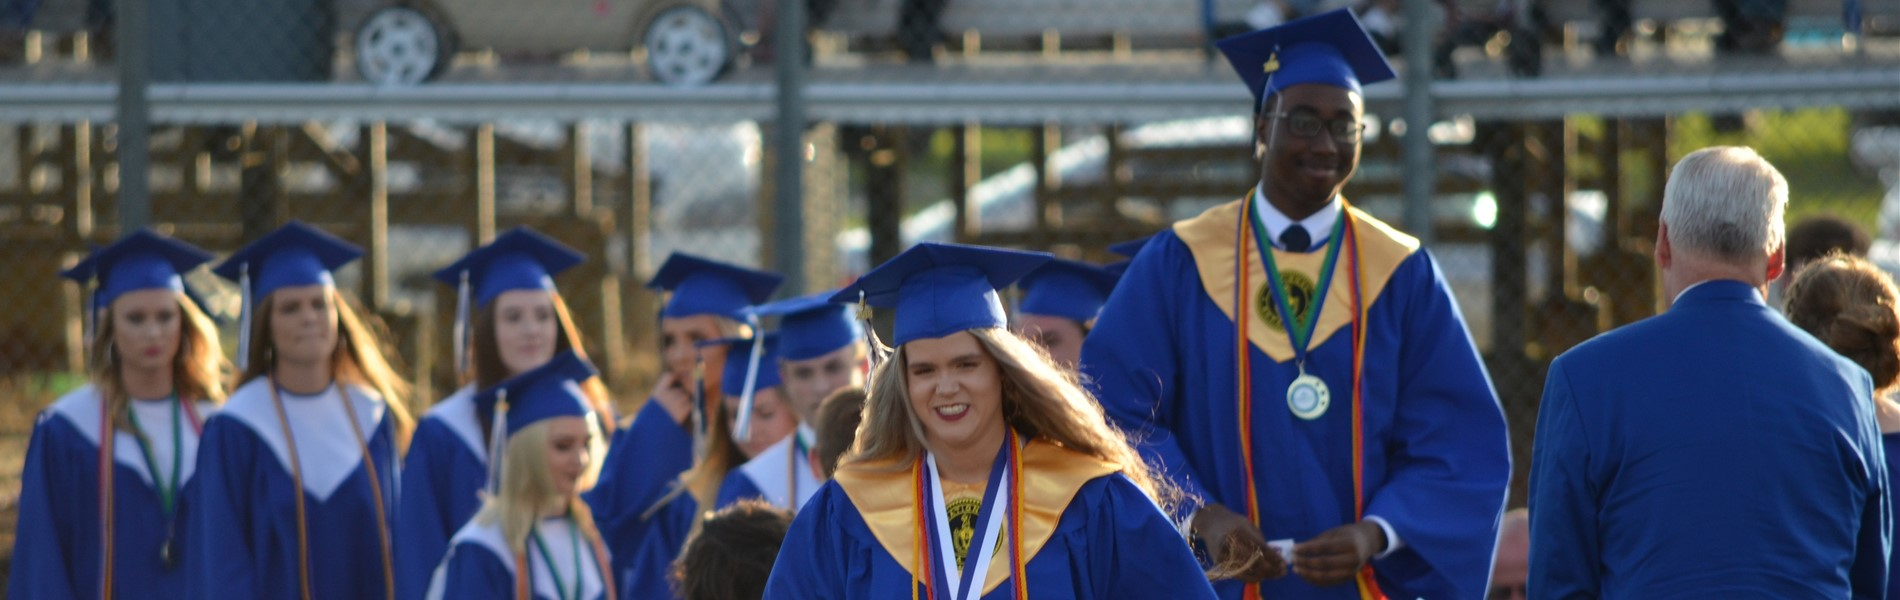 Pierce County High School graduates walking across the stage and receiving a diploma.